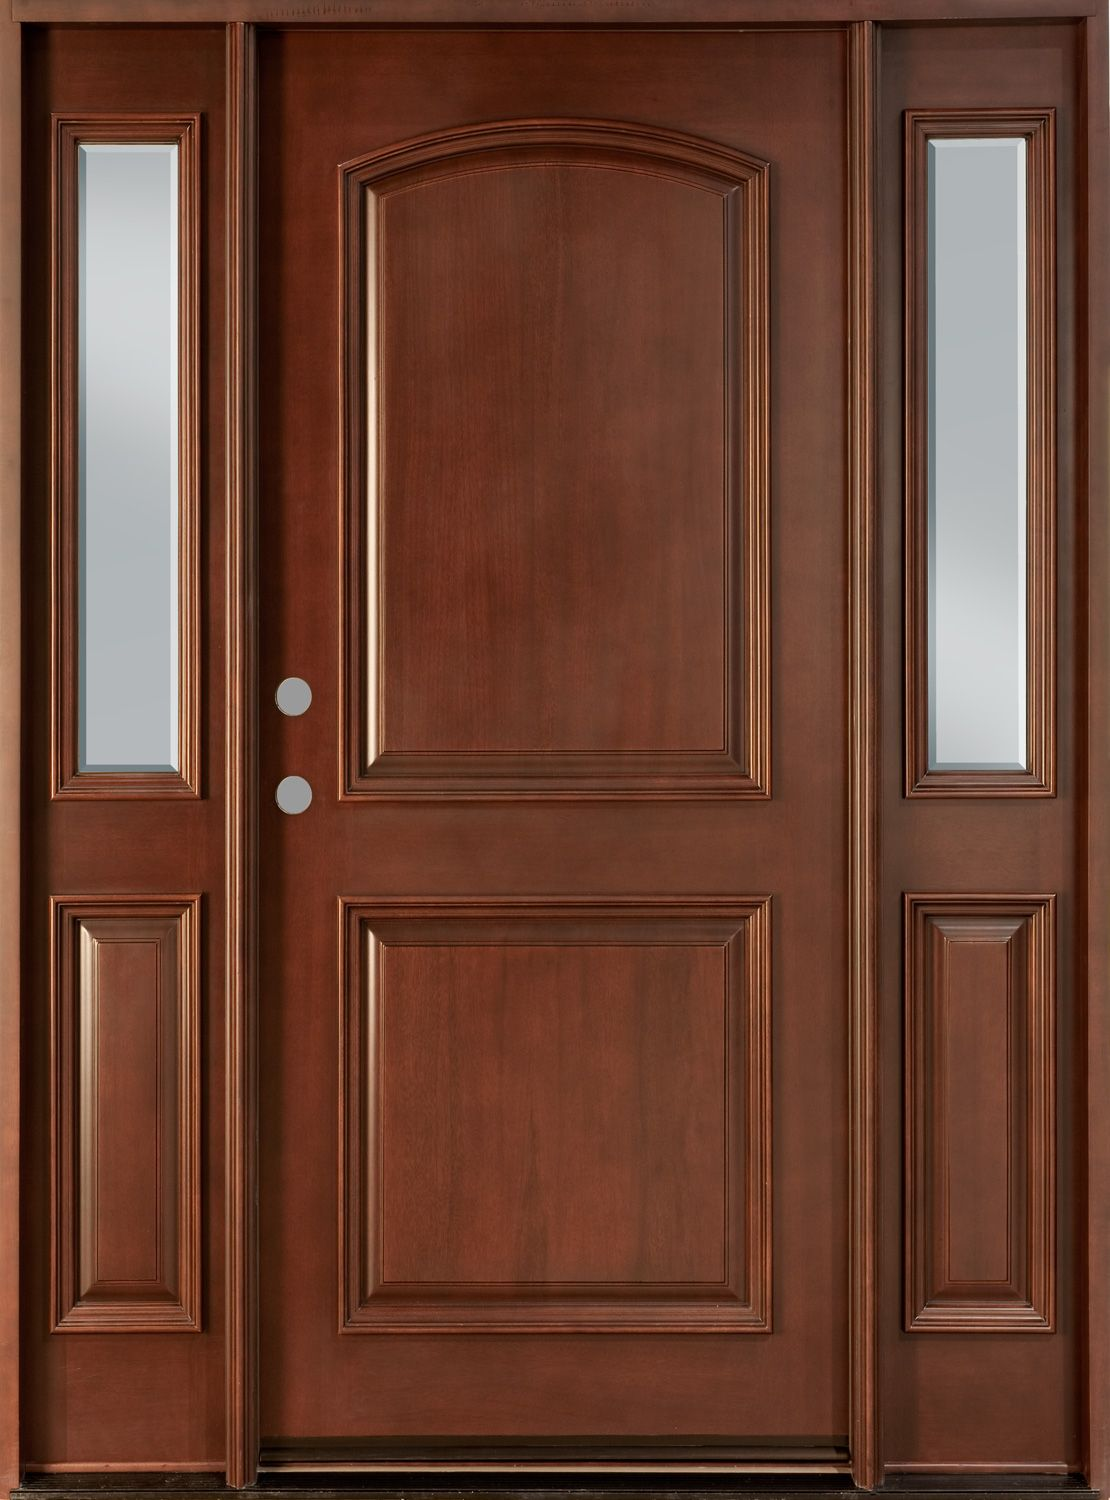 Front Door Custom Single With 2 Sidelites Solid Wood With Dark Mahogany Finish Class Wooden Front Doors Solid Wood Front Entry Doors Solid Wood Front Door